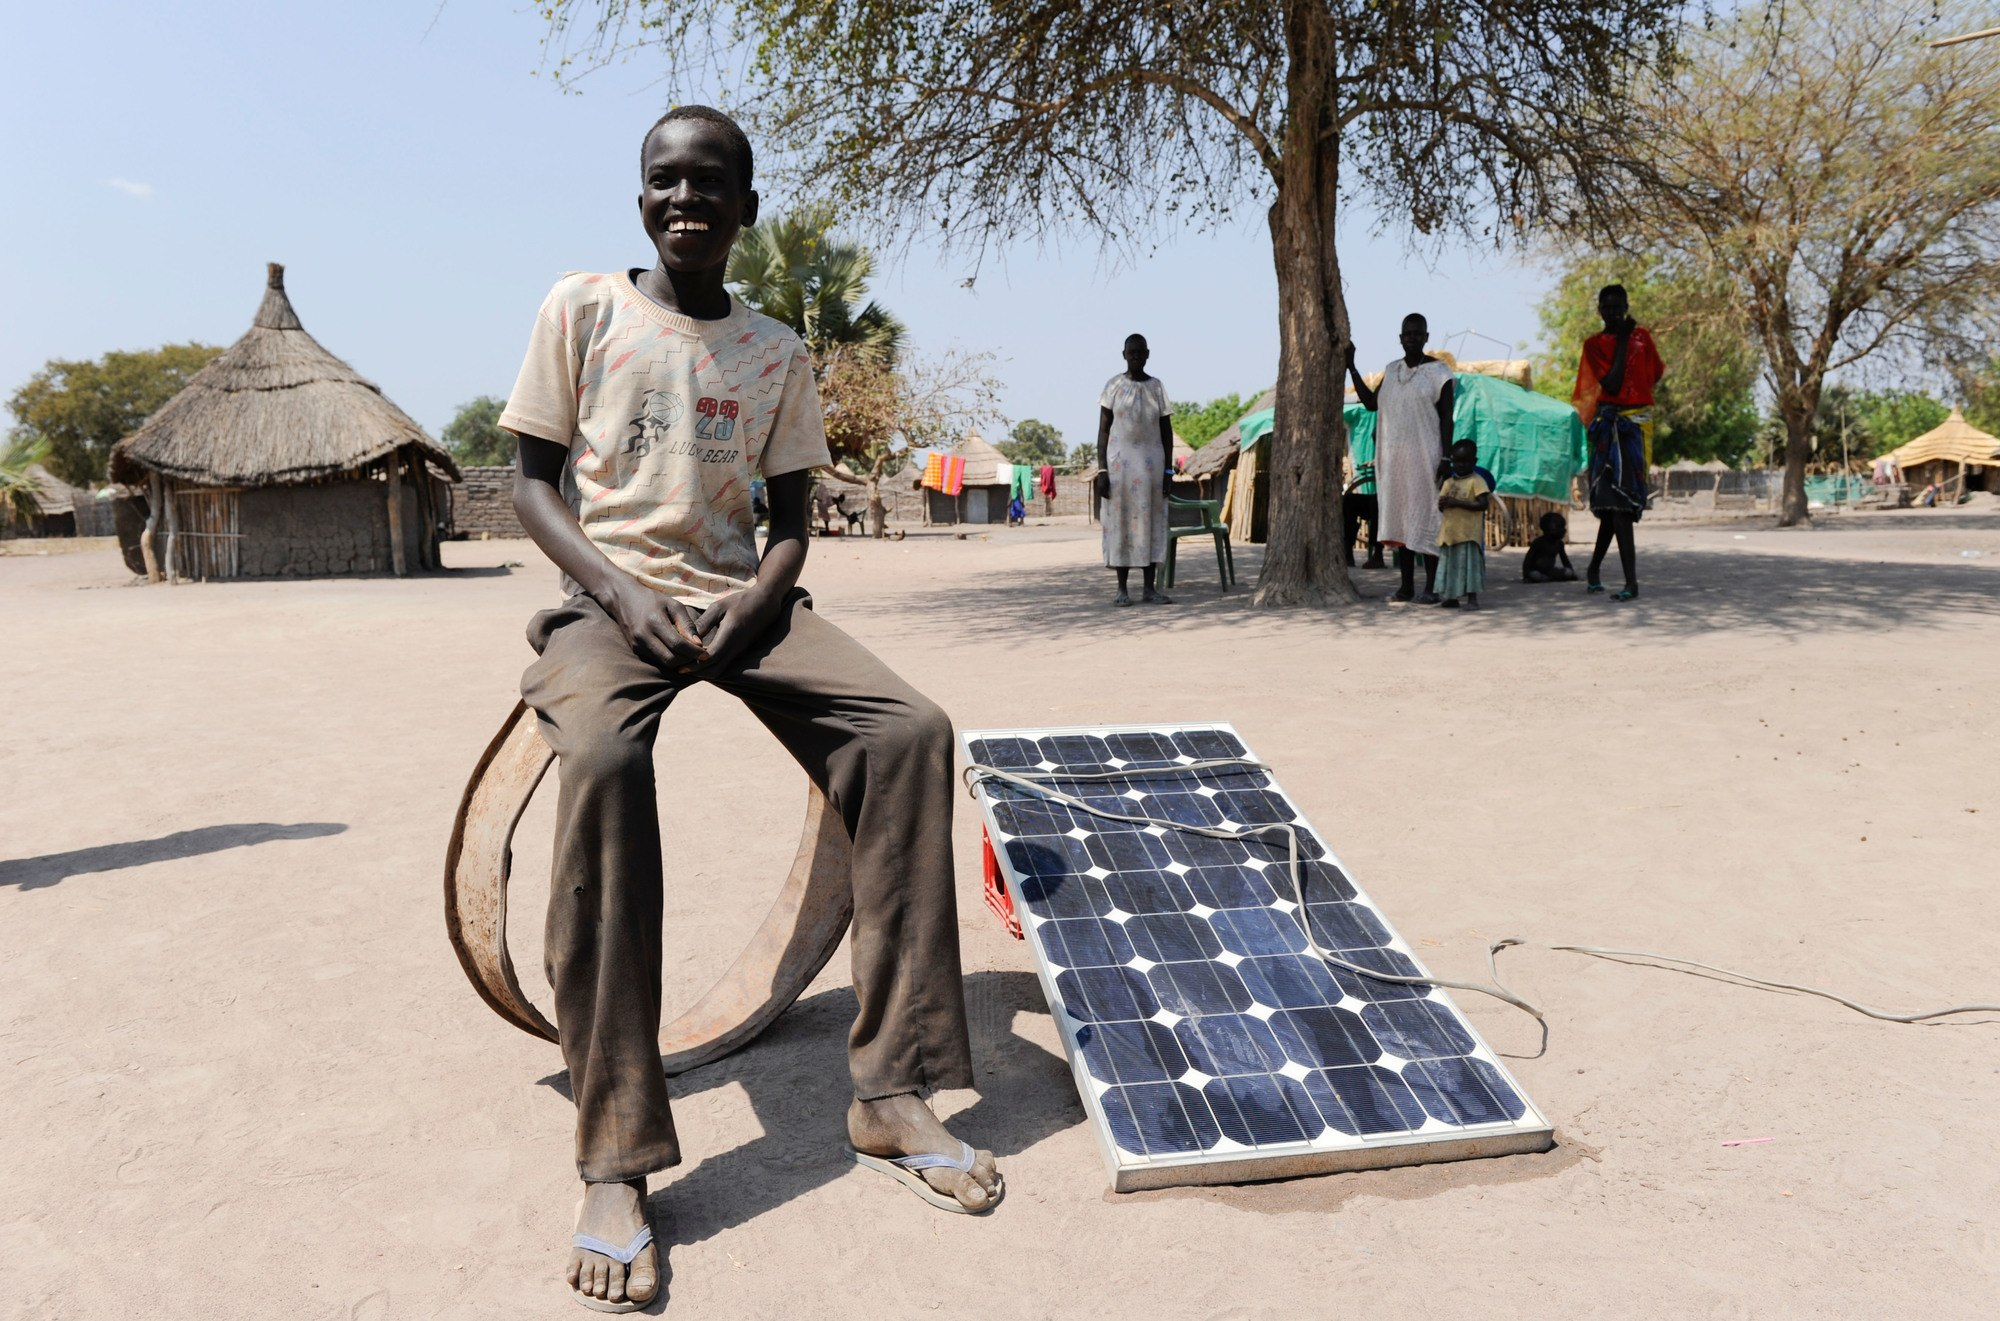 Sub-Saharan African Solar Companies To Gain From Shell & FMO's Newly Launched USD 120 Mn Fund